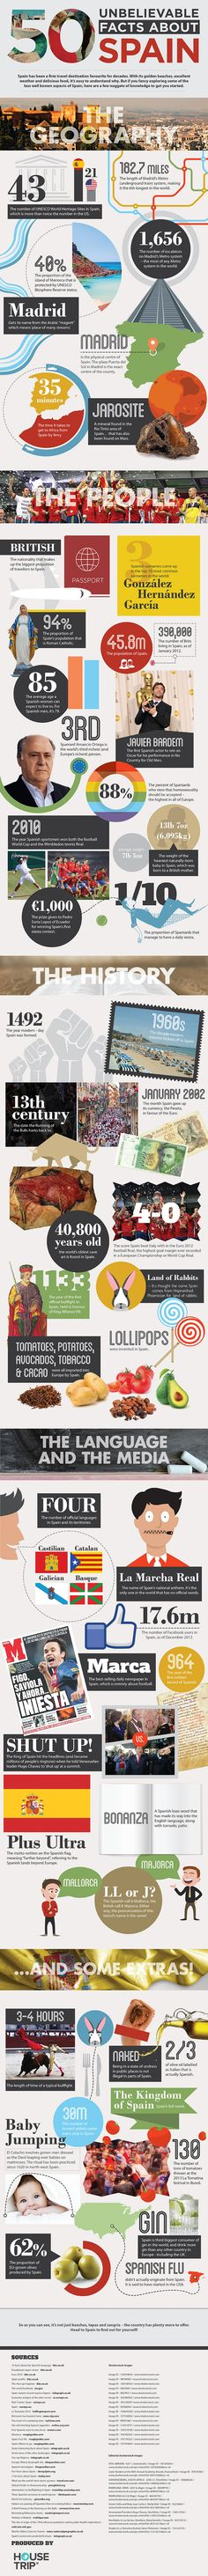 50 Facts About Spain Infographic Get answers to all your questions with #TheLightApp . Get your personal answering expert http://www.thelightapp.com/